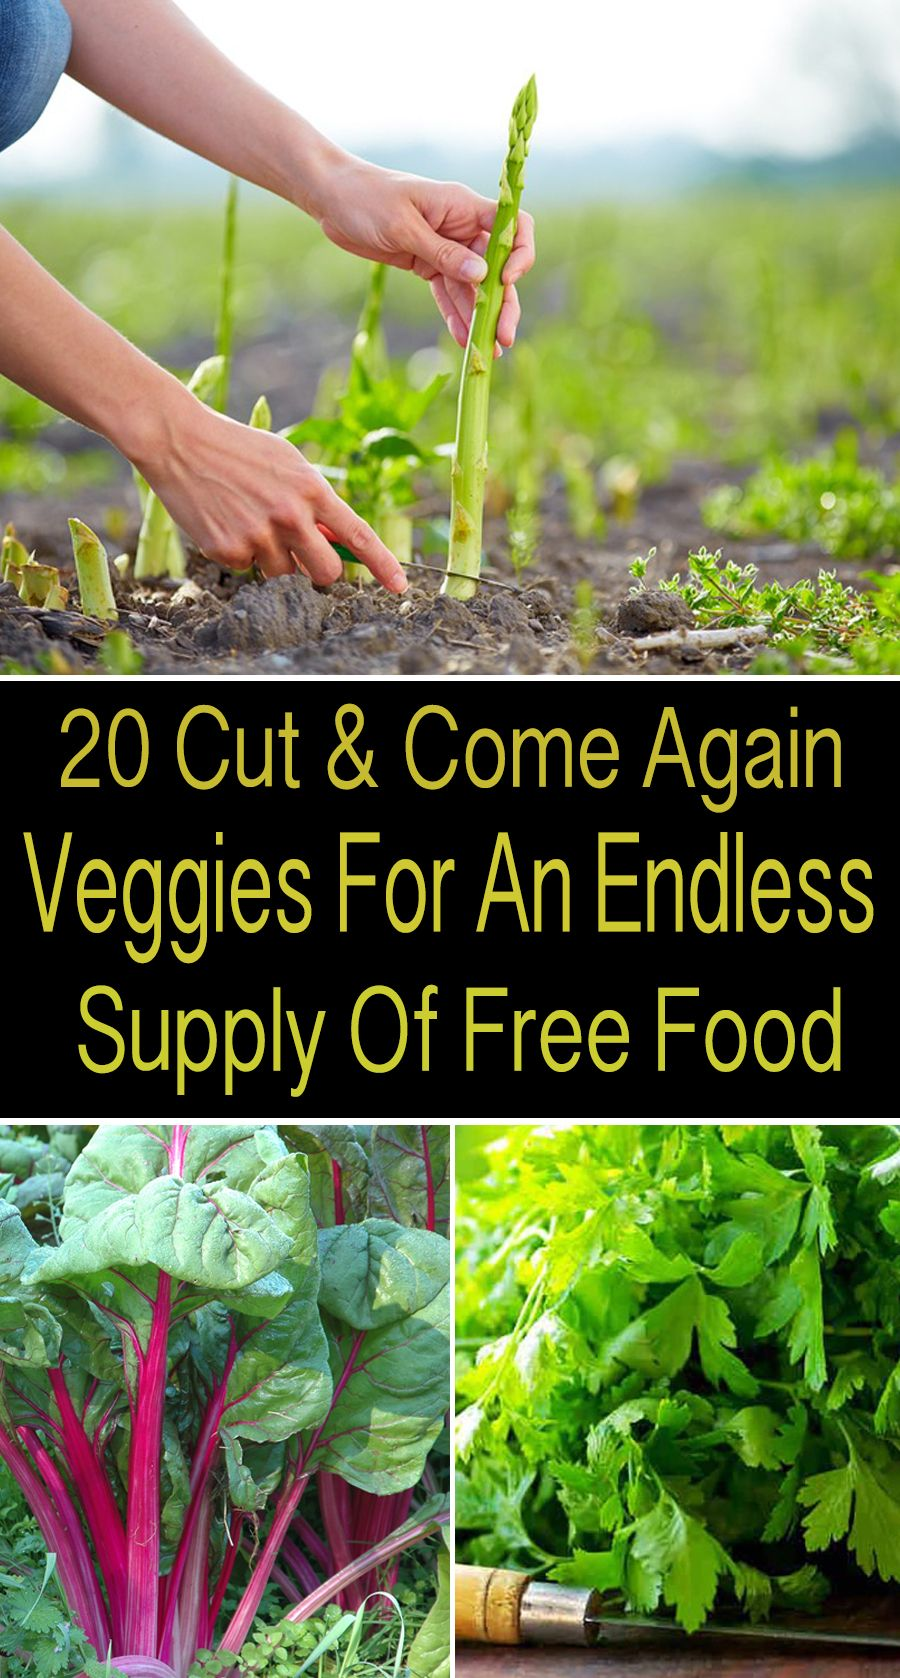 Know the endless supply of free food with these 20 cut and come veggies #herbsgarden